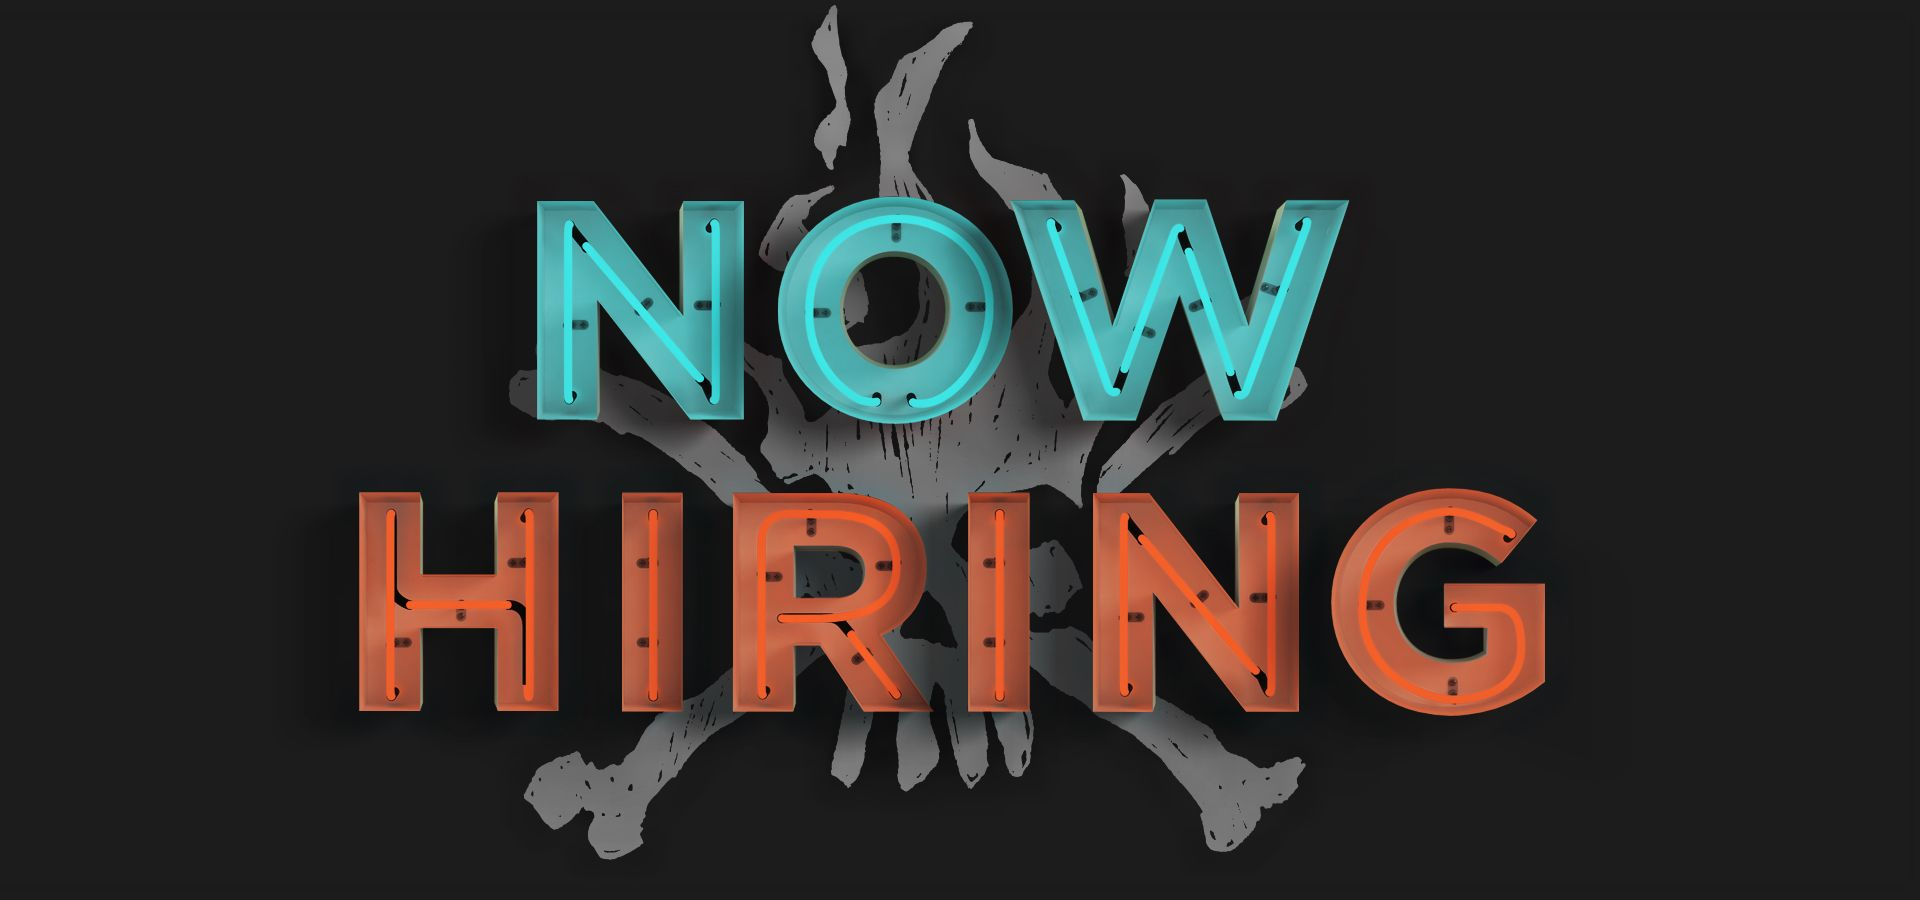 Hear ye, hear ye! Brains on Fire is on the huntfor a qualified Creative & Graphic Designer to join our team. Could it be YOU?